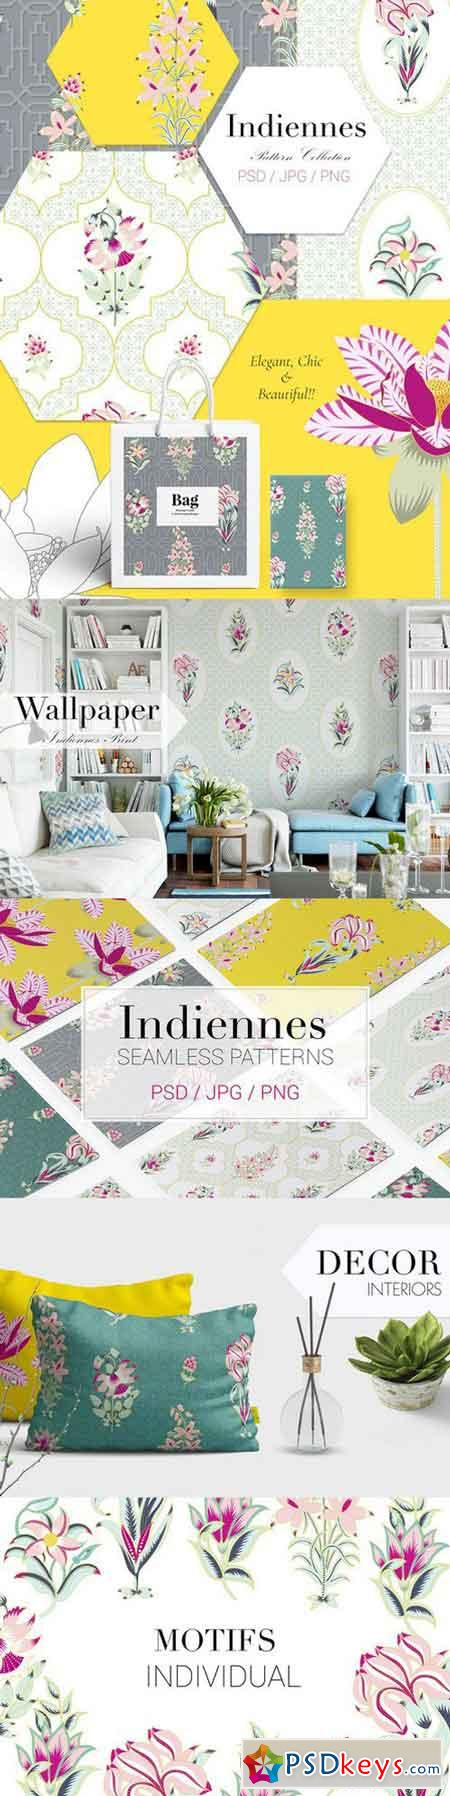 Indiennes - Exquisite Prints 2042647